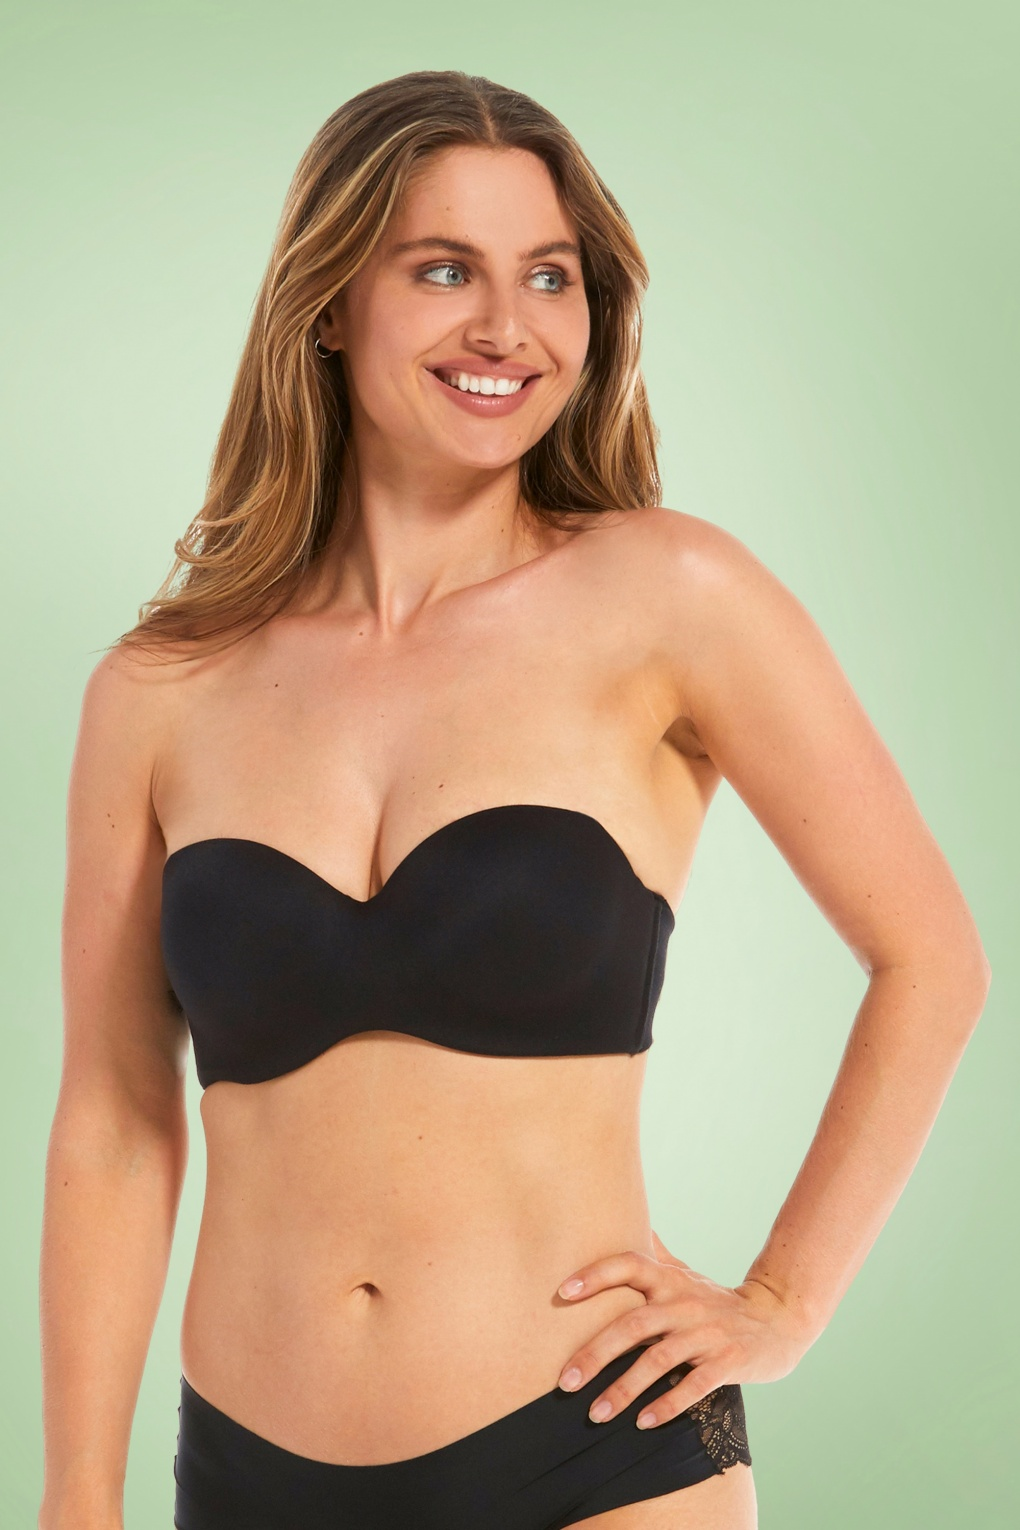 Luxury Strapless Bra in Black von magic bodyfashion